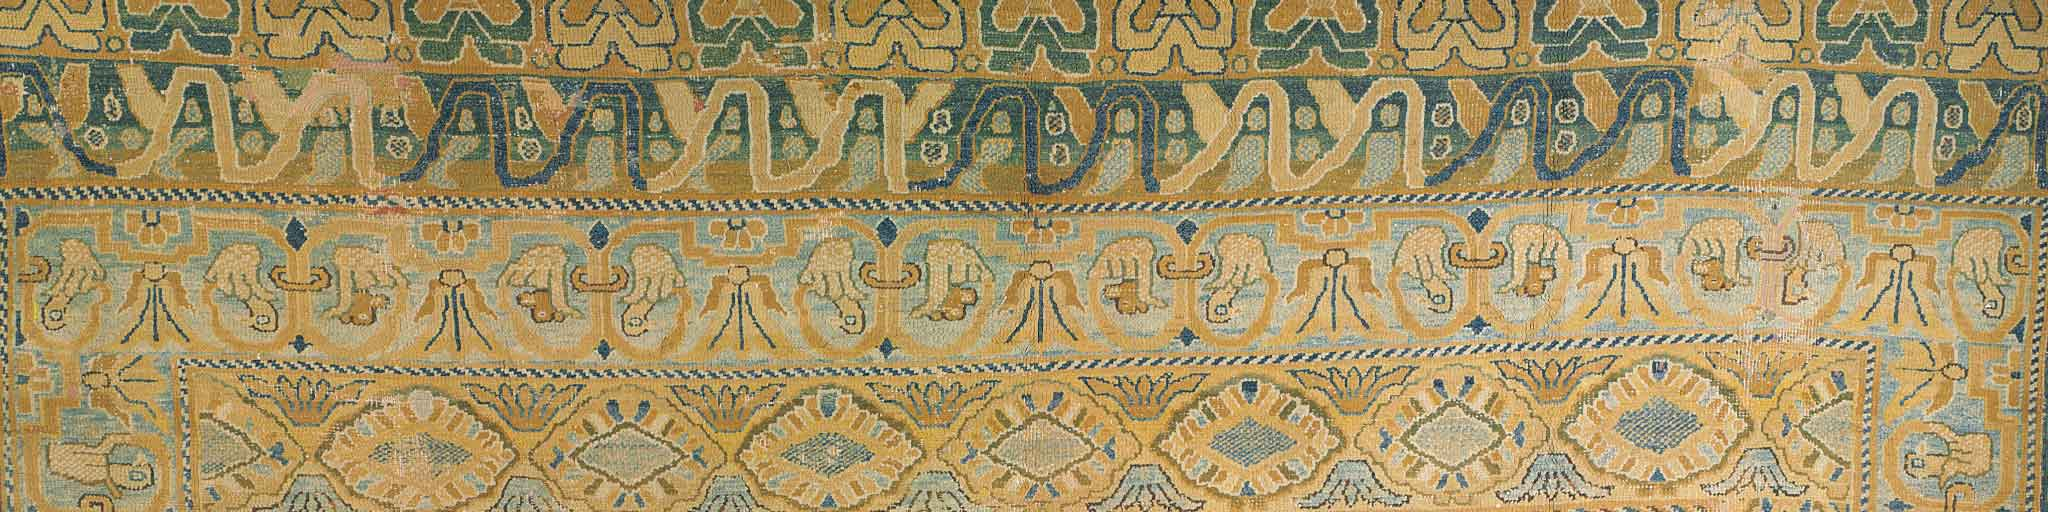 Collectible or Knot: The Value of Handmade Carpets